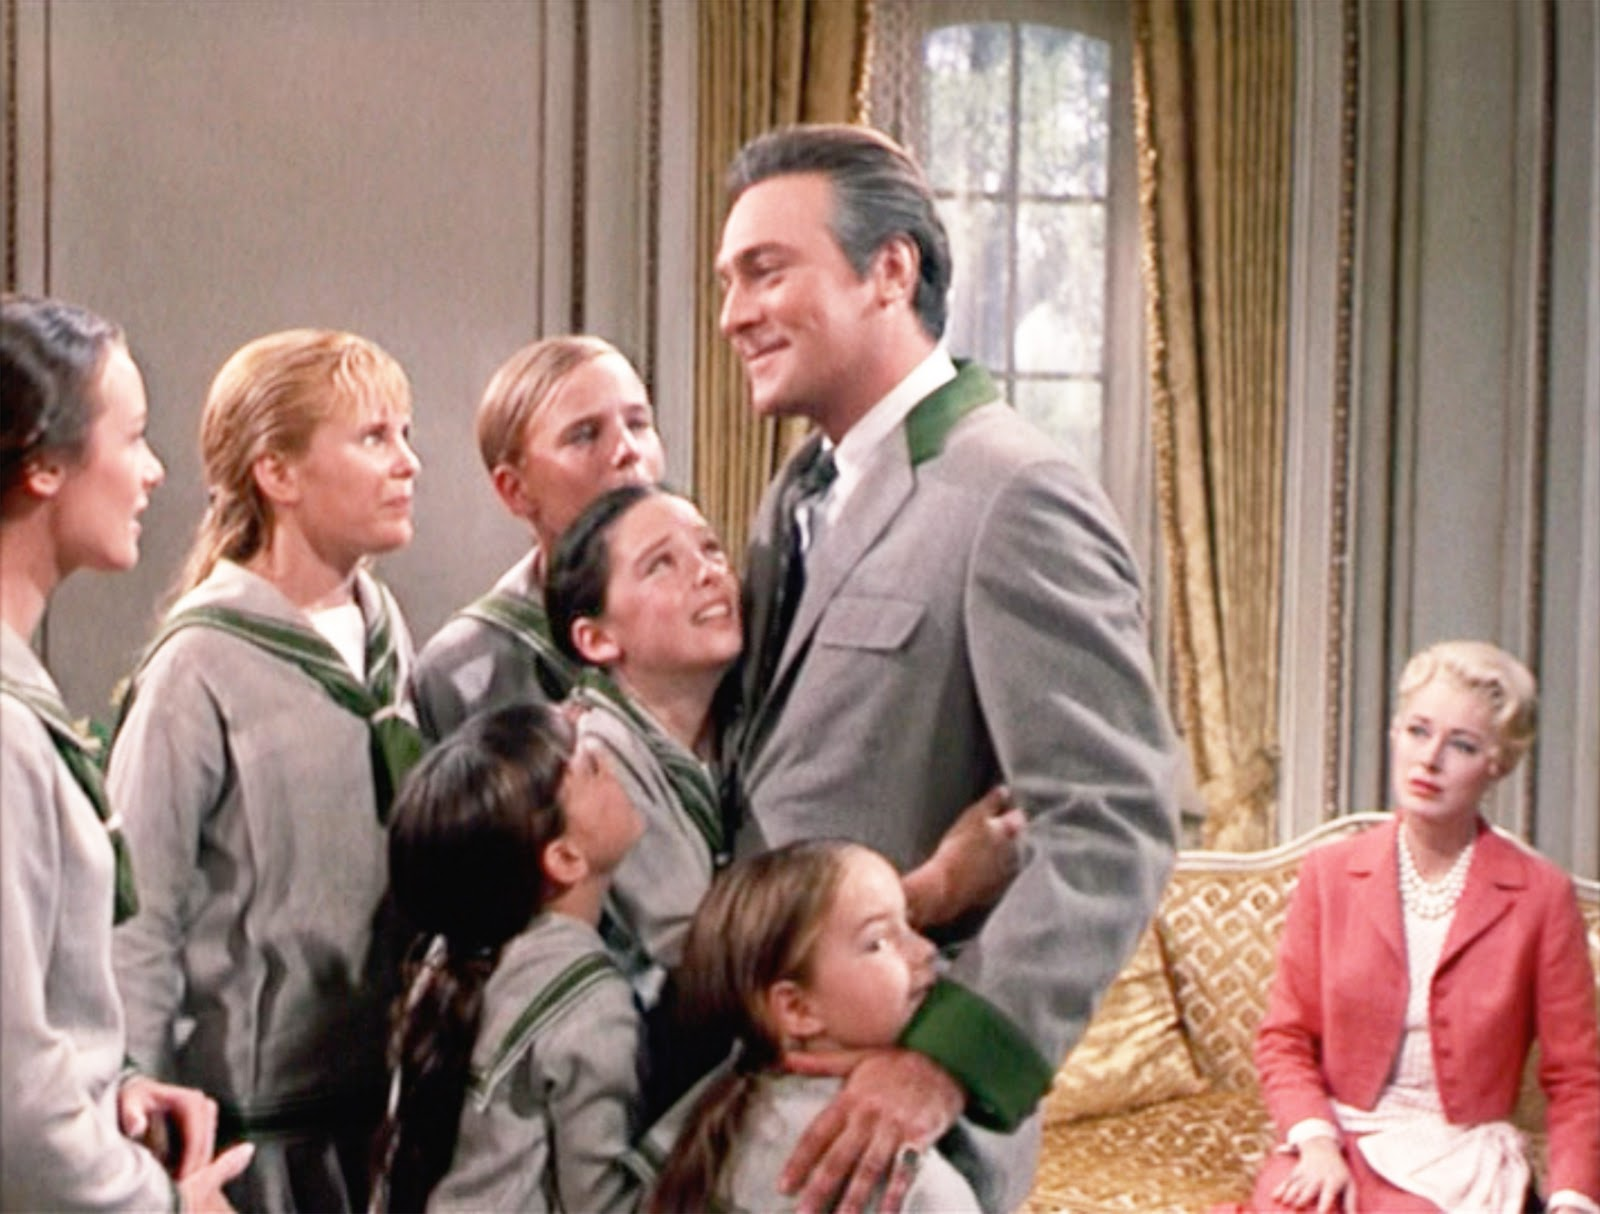 Erin Korth: Why I Love THE SOUND OF MUSIC